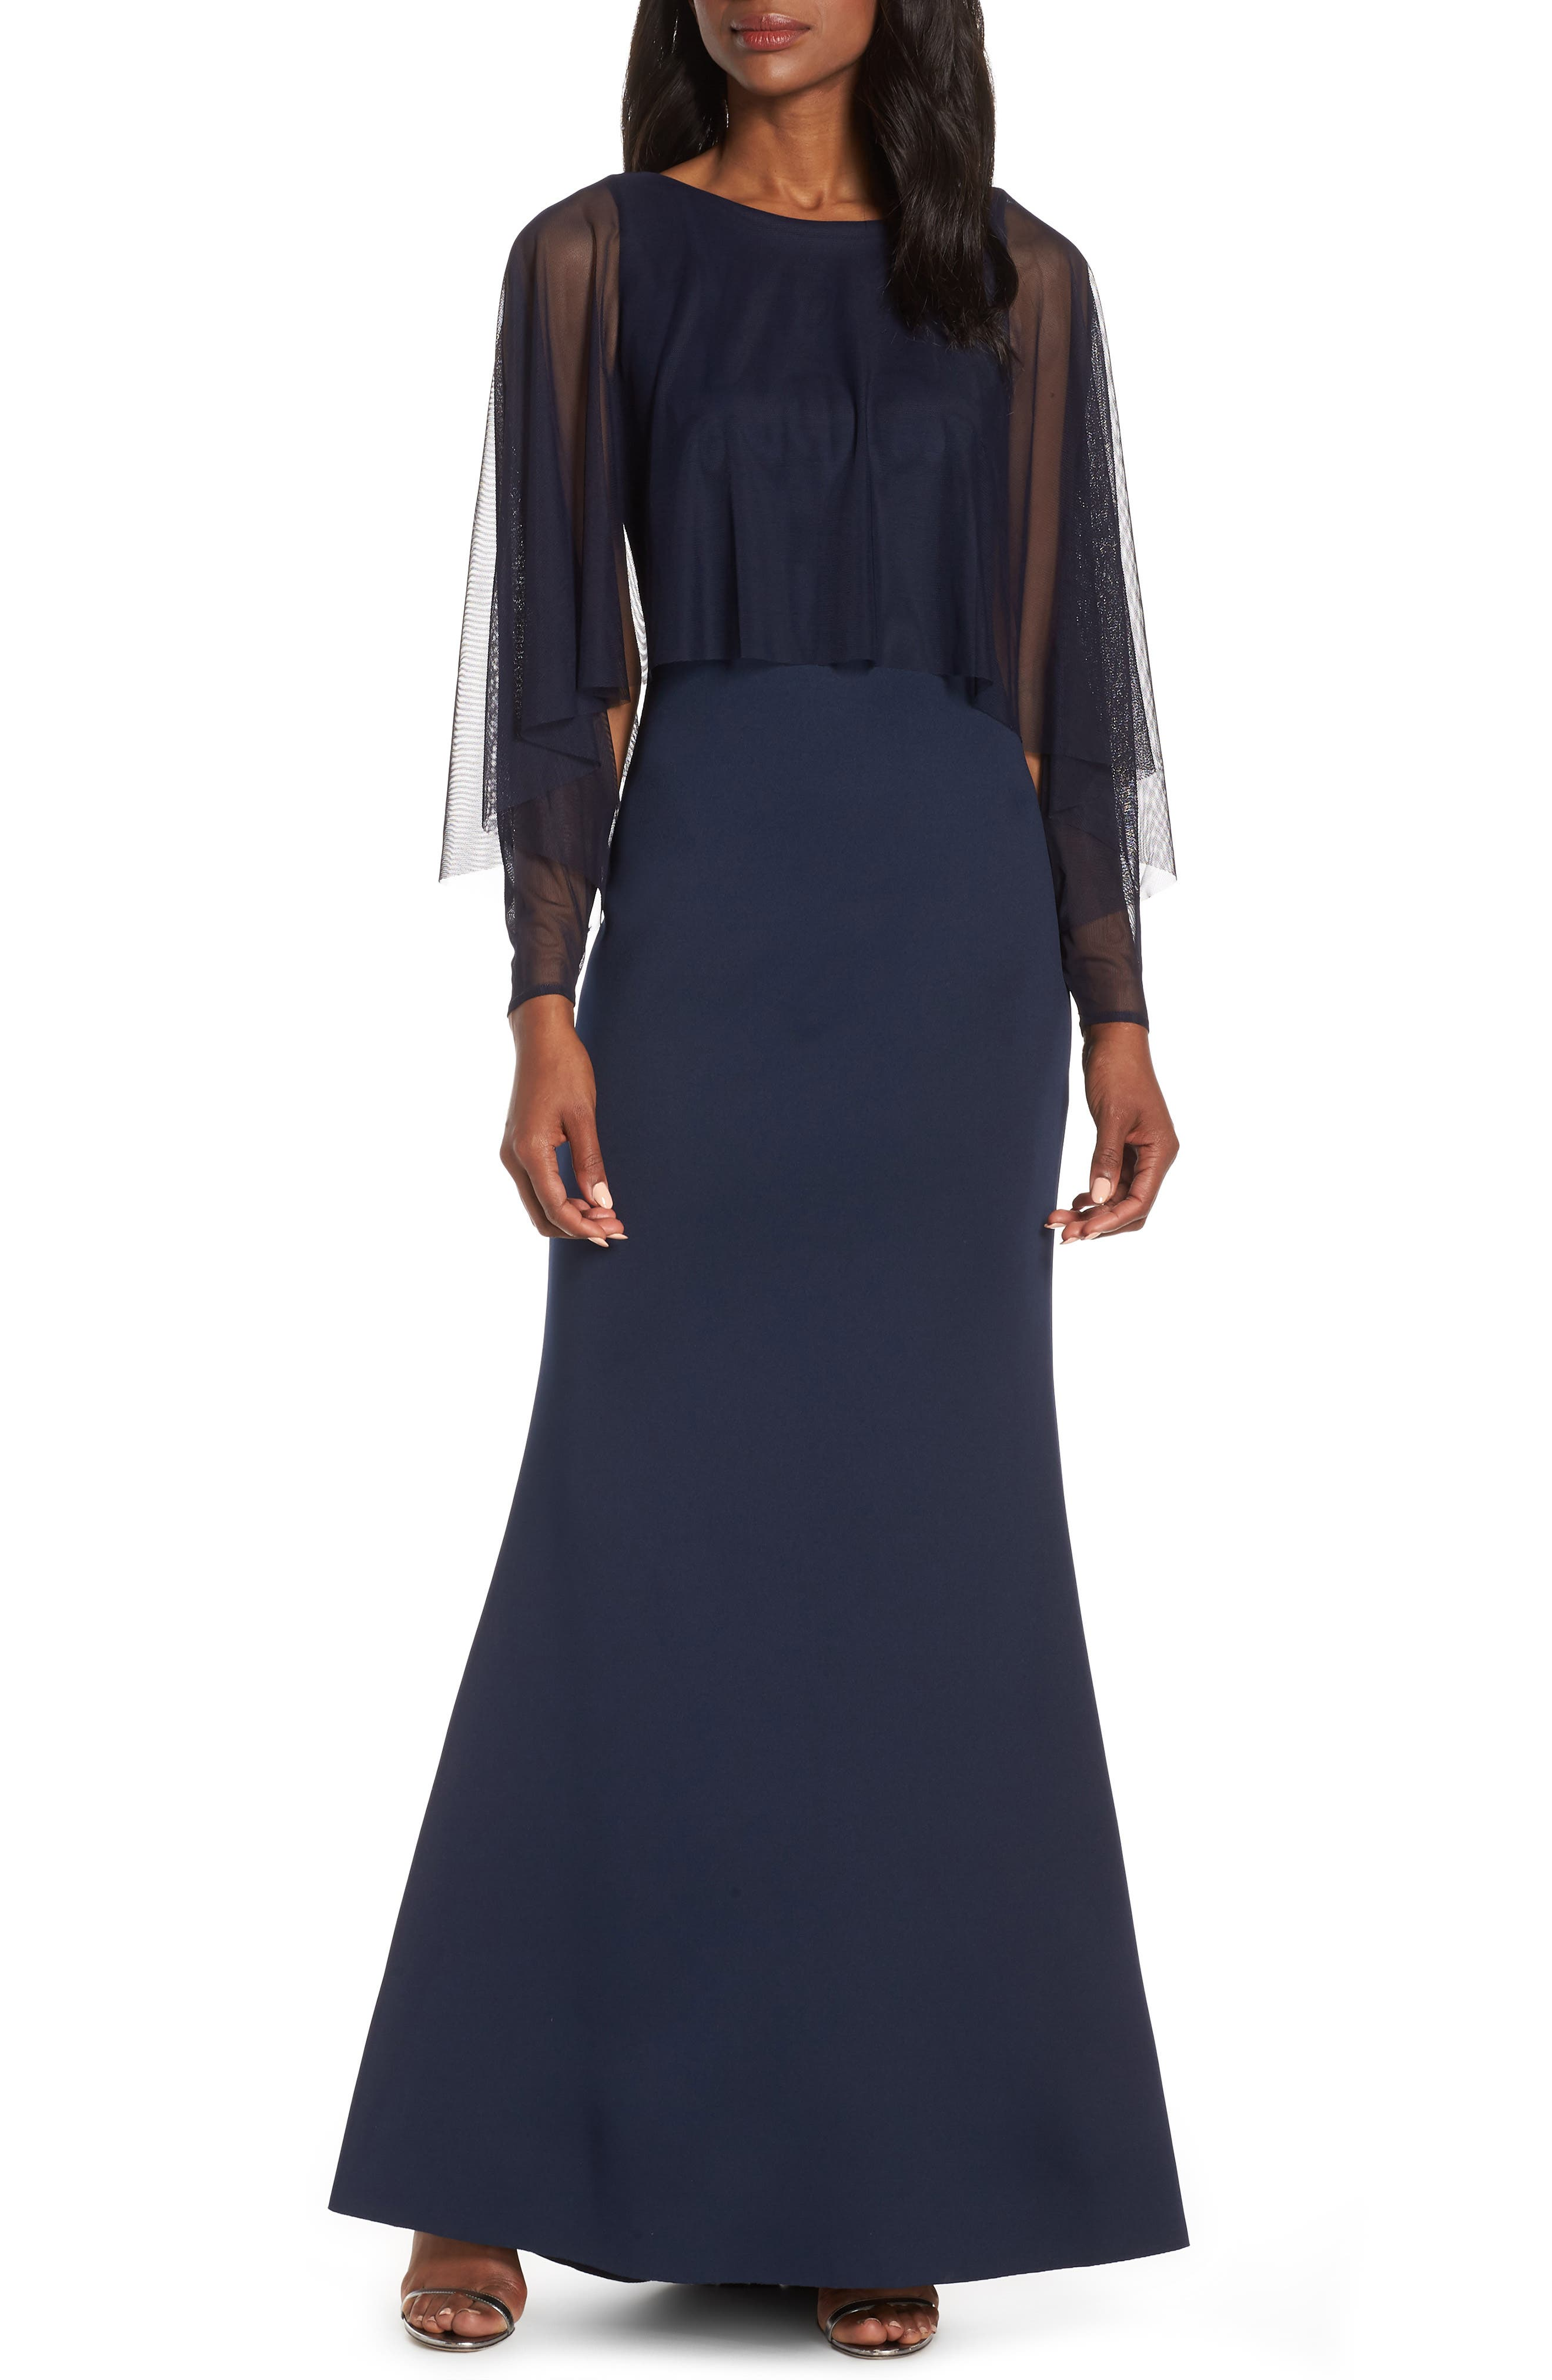 ELIZA J Mesh Popover Sleeve Scuba Evening Dress, Main, color, NAVY